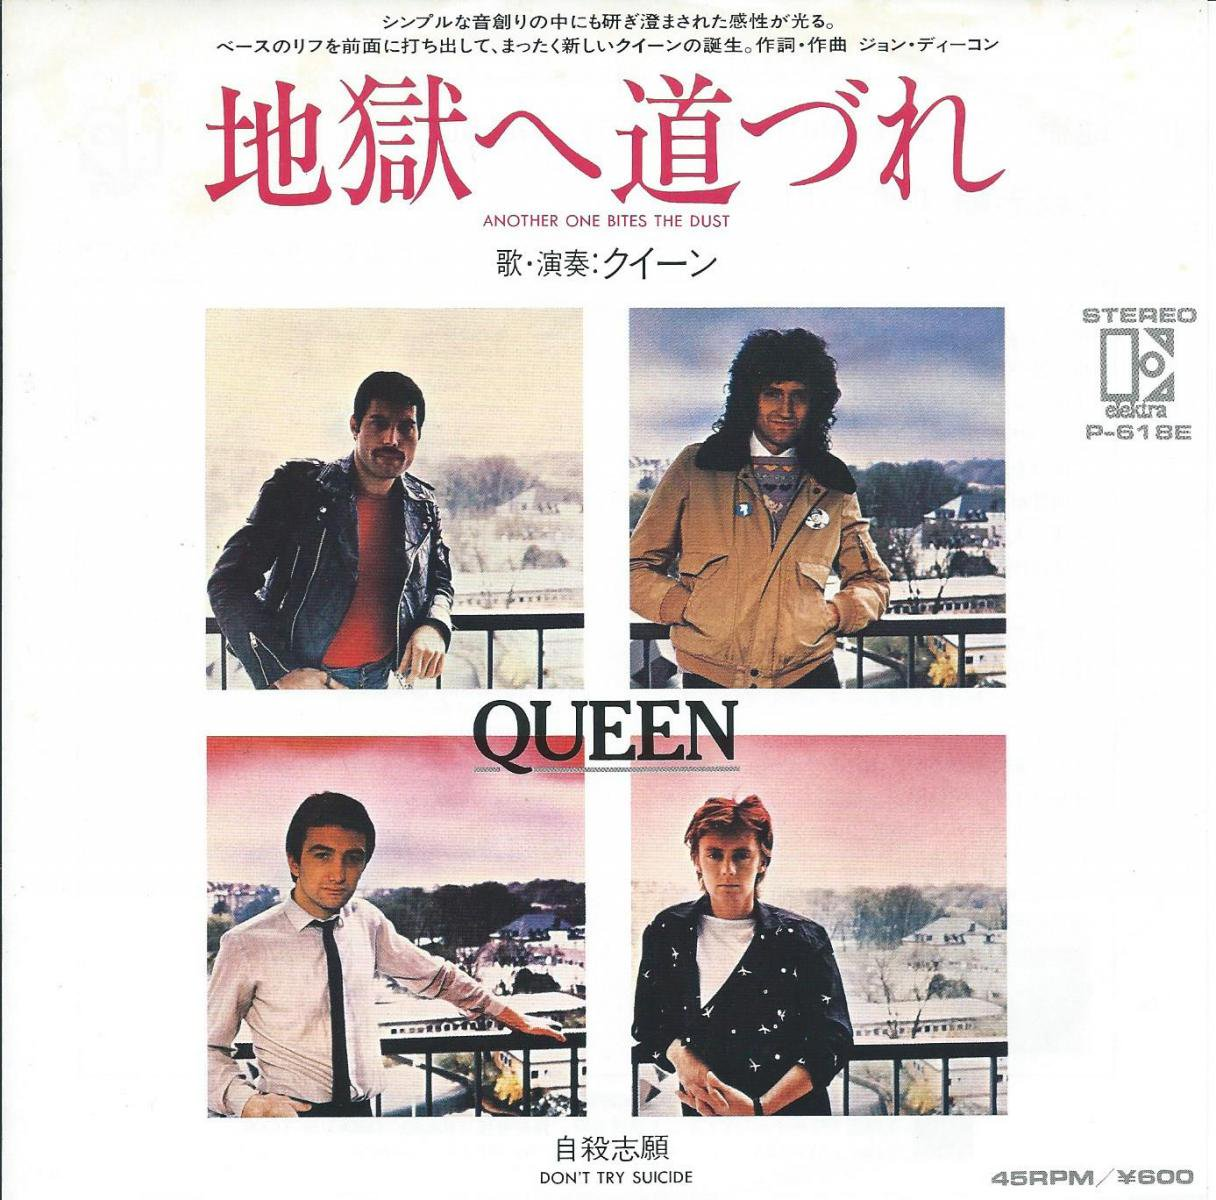 クイーン QUEEN / 地獄へ道づれ ANOTHER ONE BITES THE DUST (7